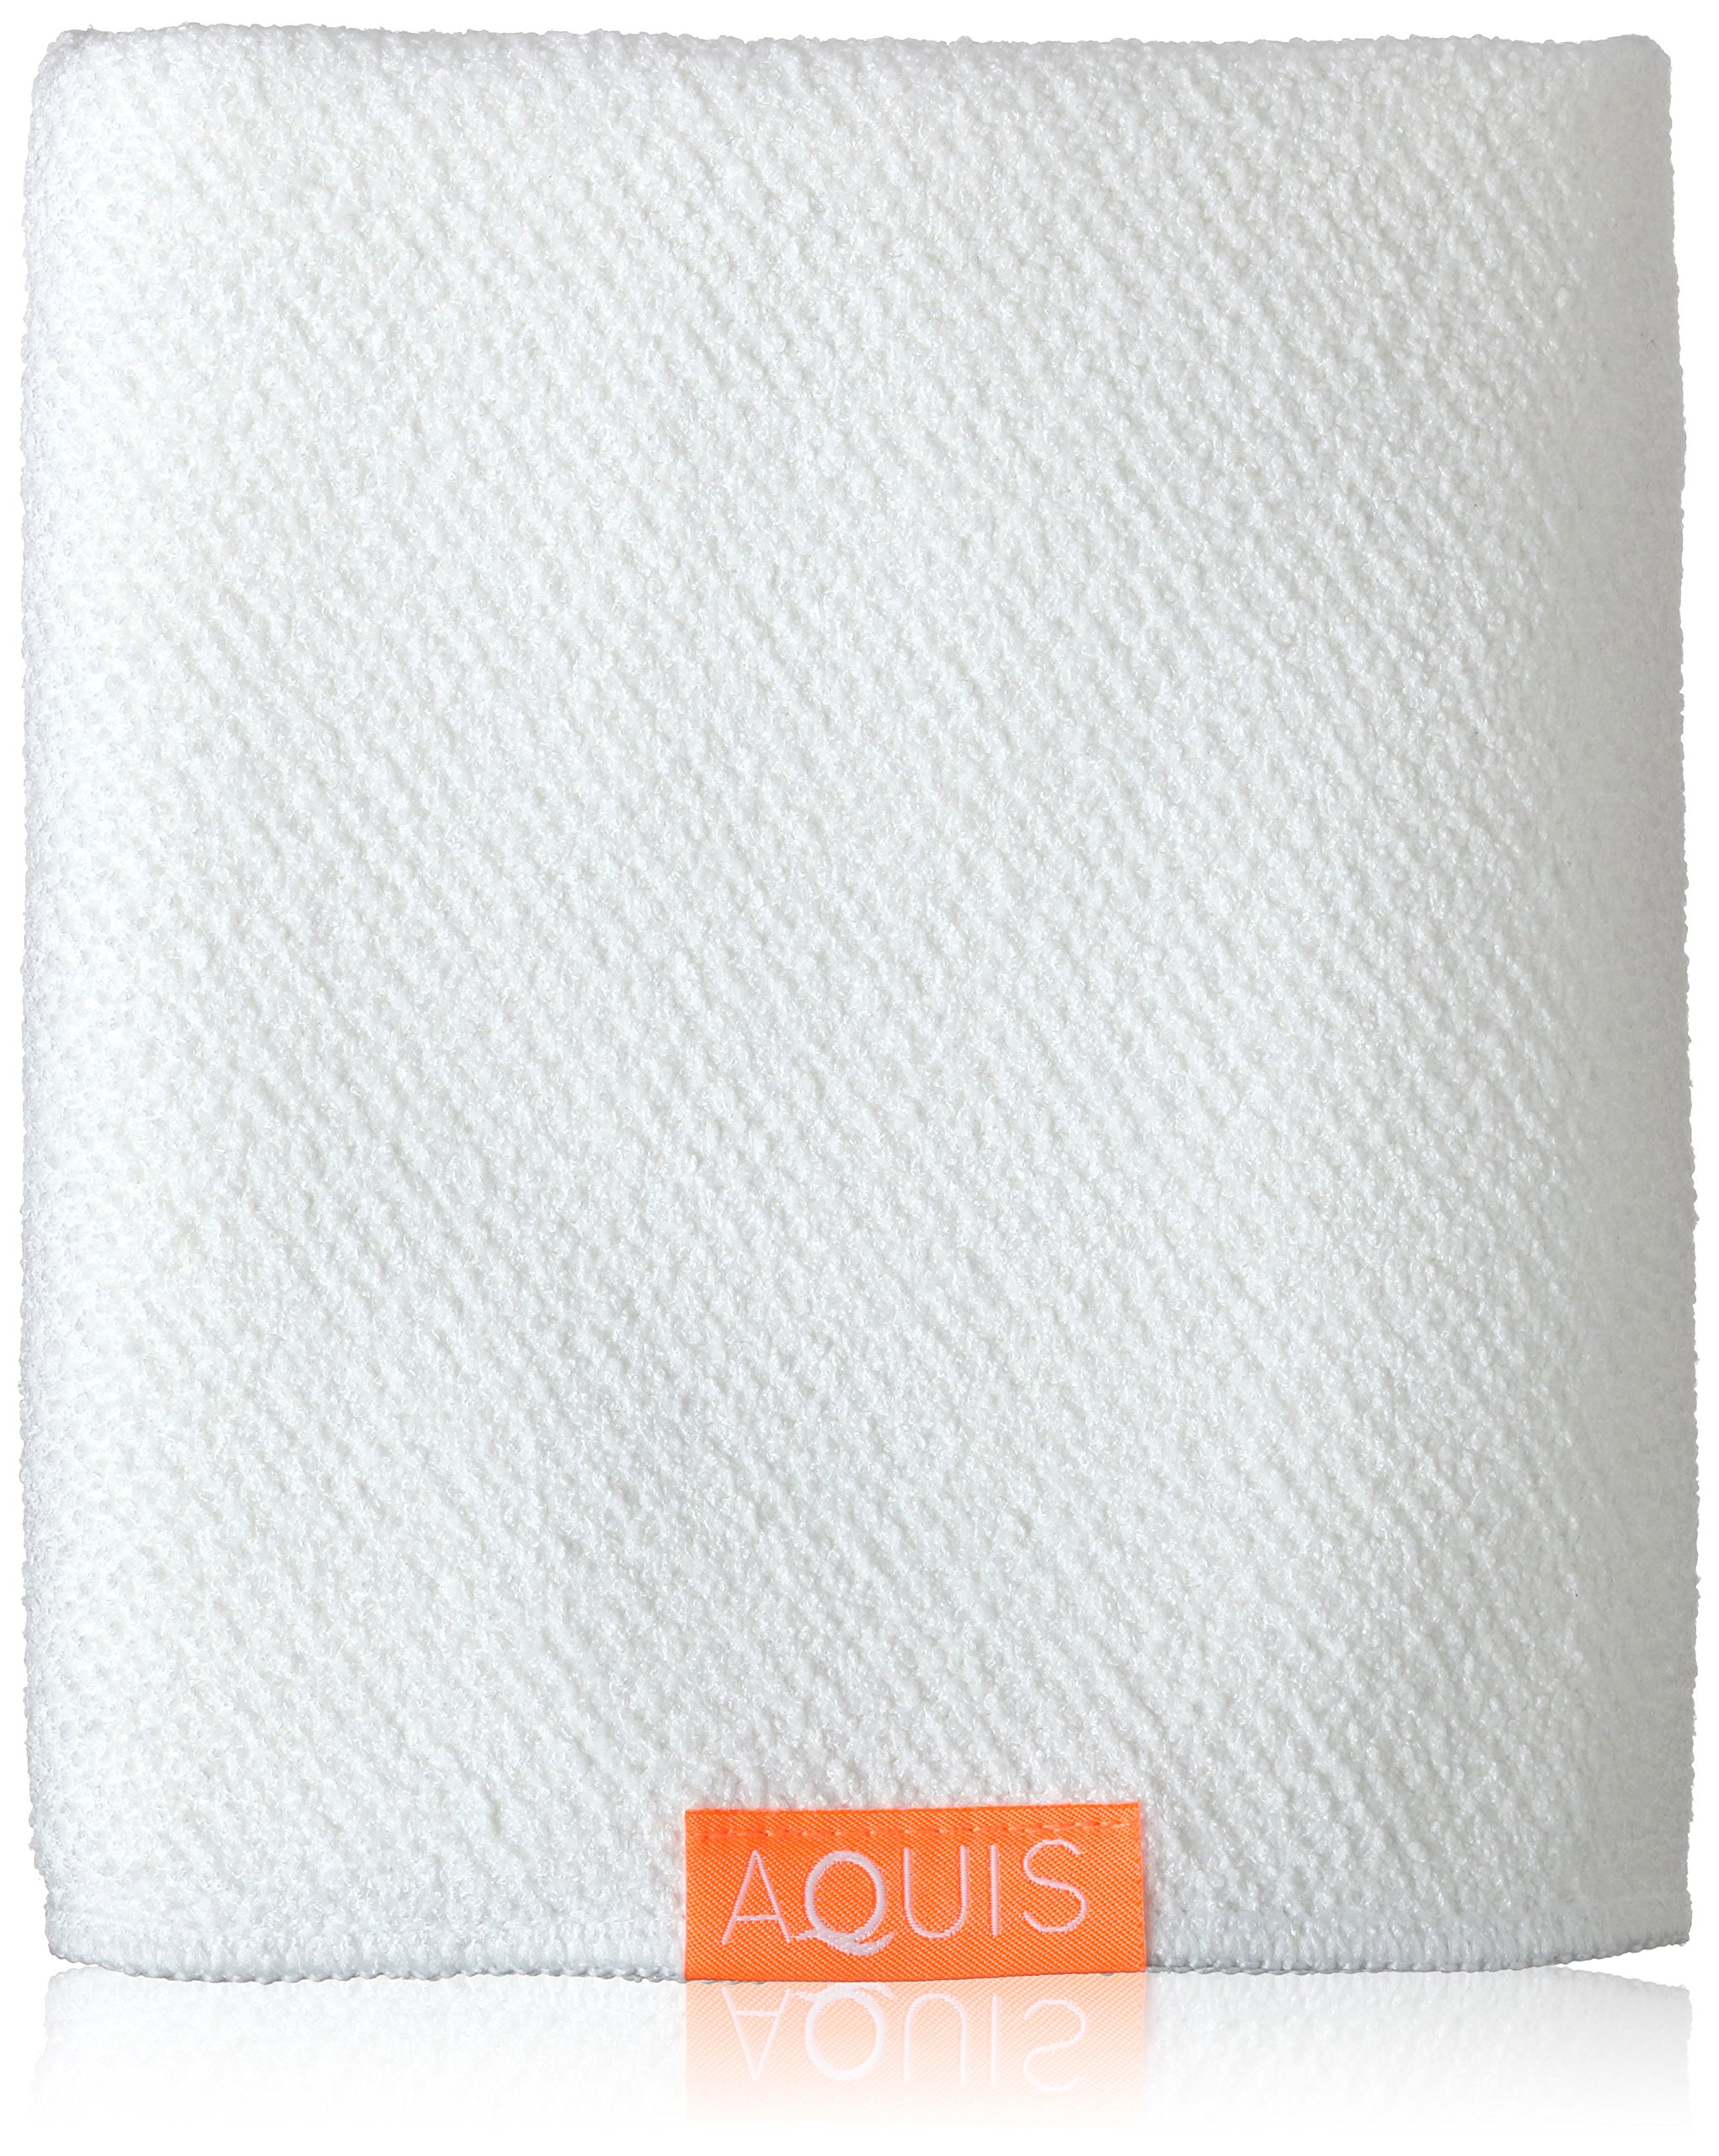 Aquis Lisse Luxe Hair Towel, White, 7 oz. by AQUIS (Image #1)